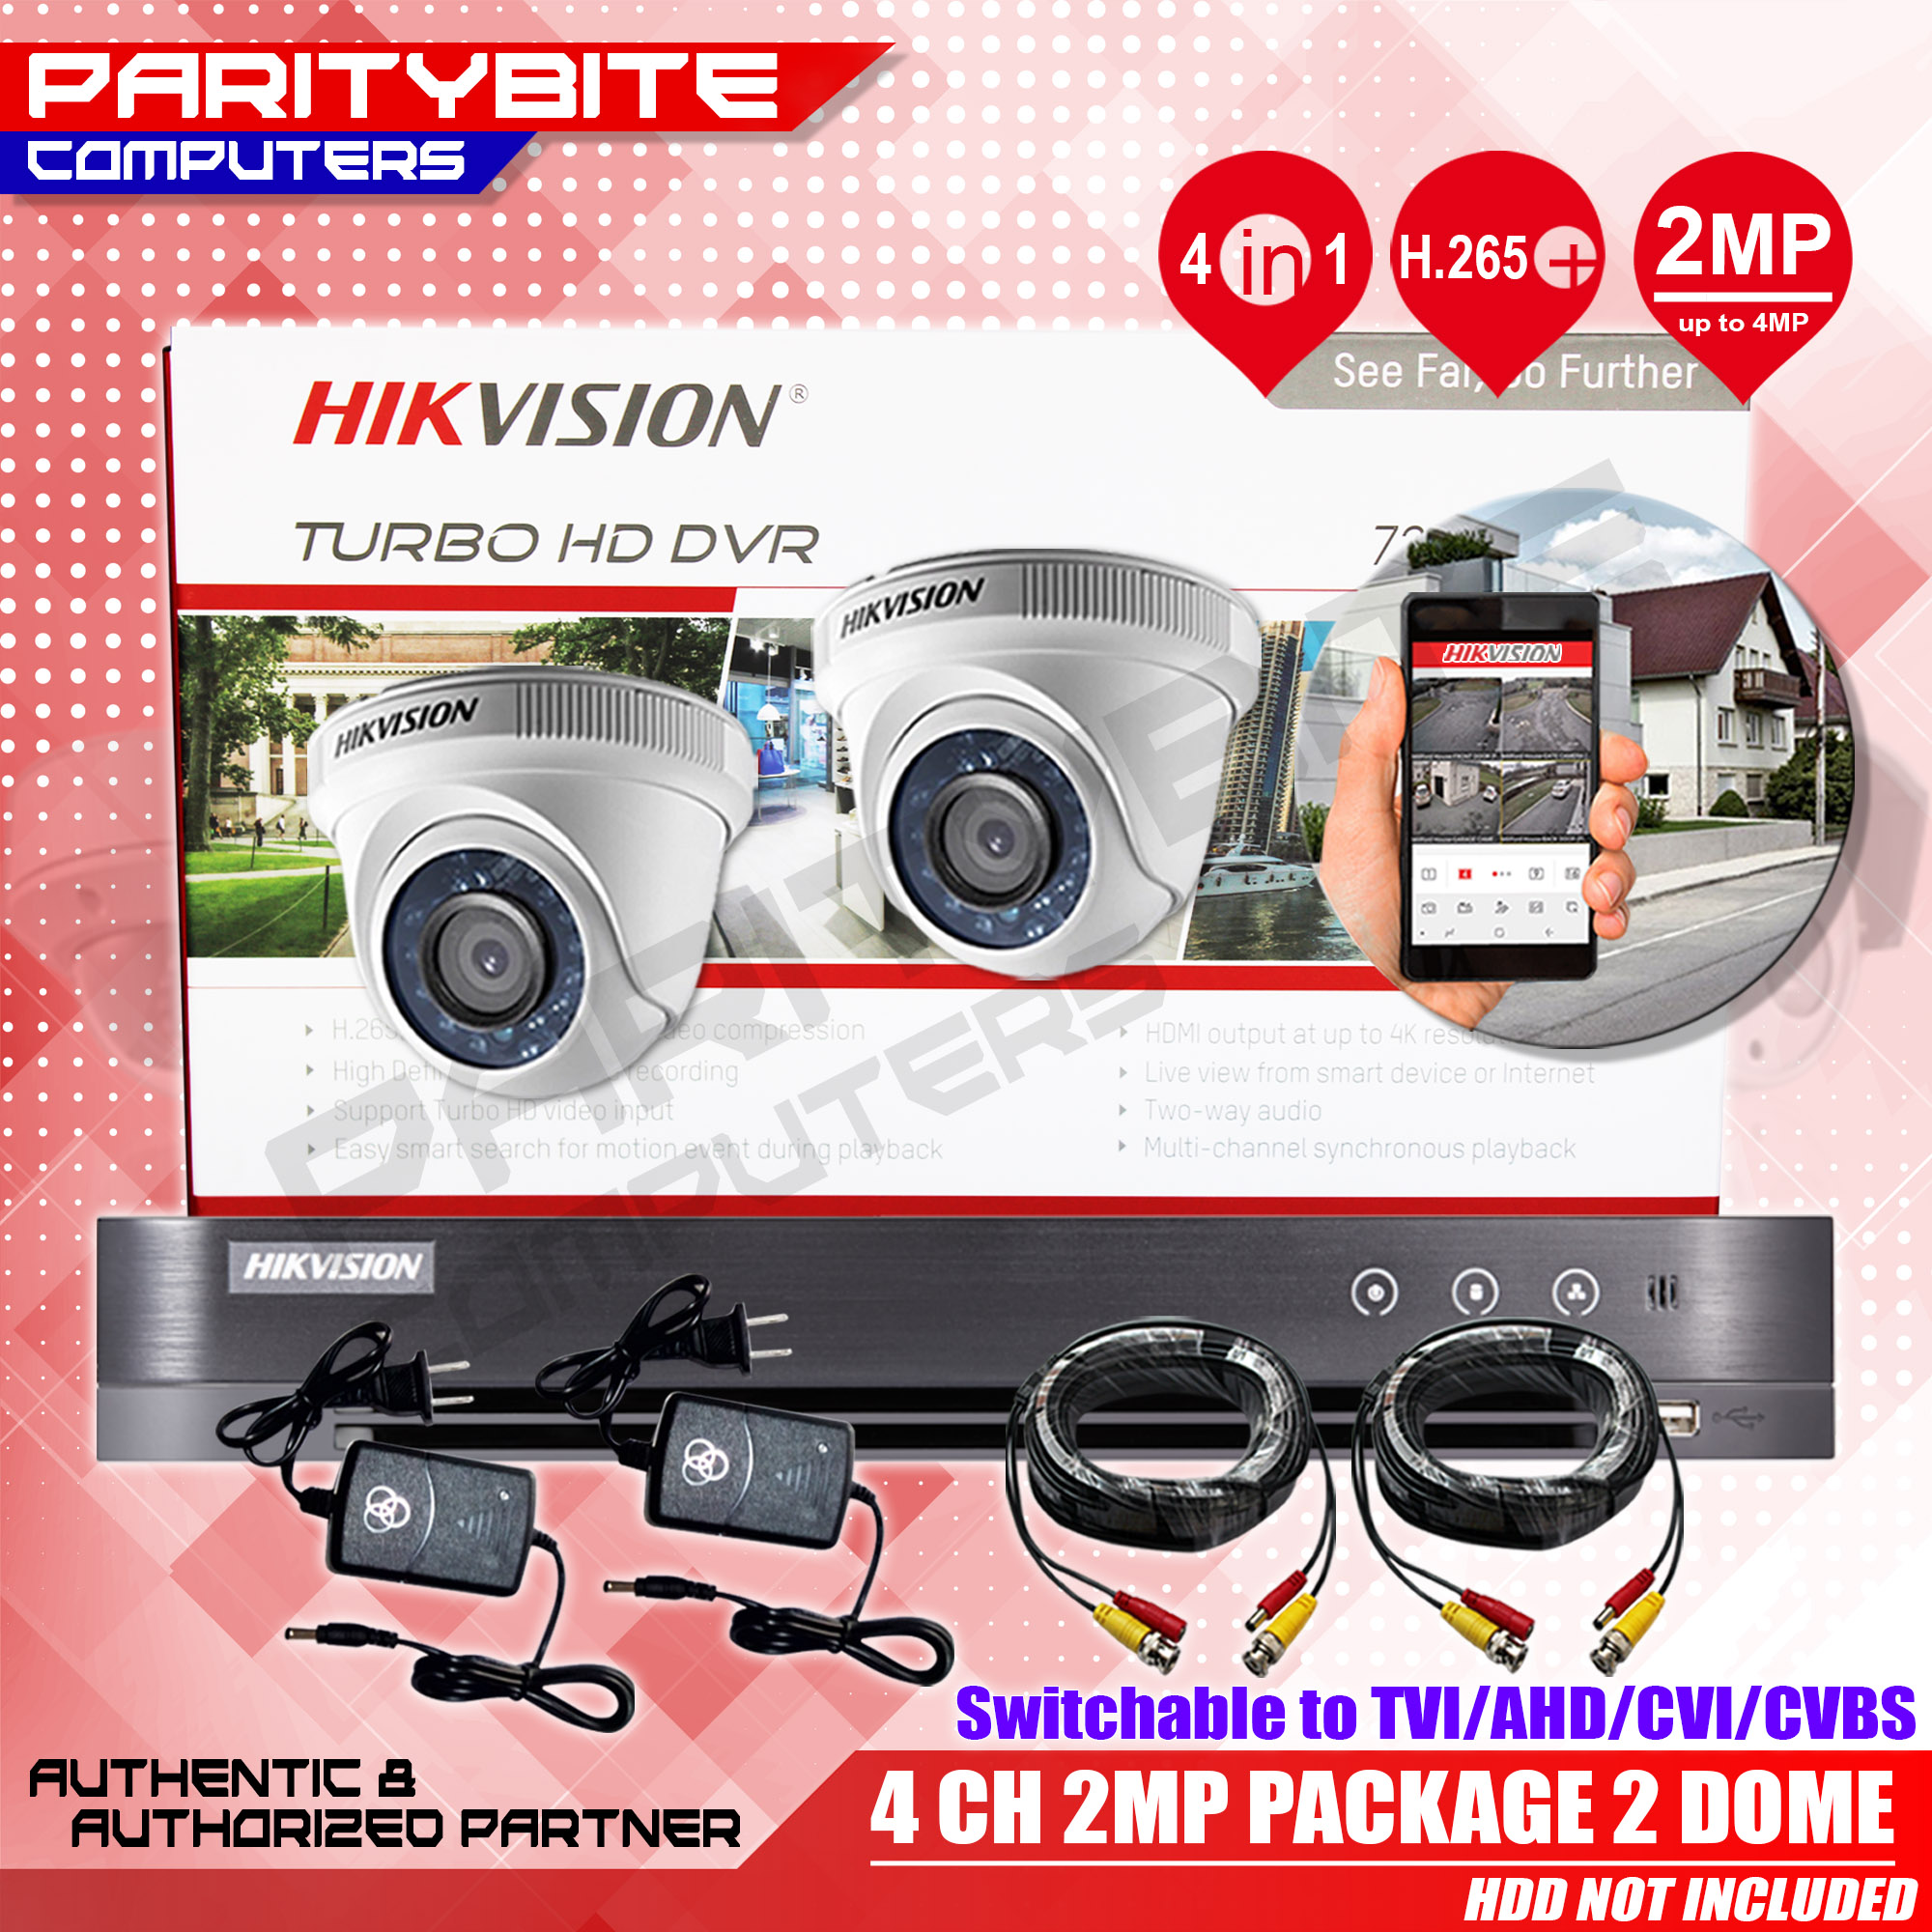 HIKVISION 4CH DVR 2 DOME 1080/2MP PACKAGE (DS-7204HQHI-K1, DS-2CE56D0T-IRPF  X 2) HDD NOT INCLUDED